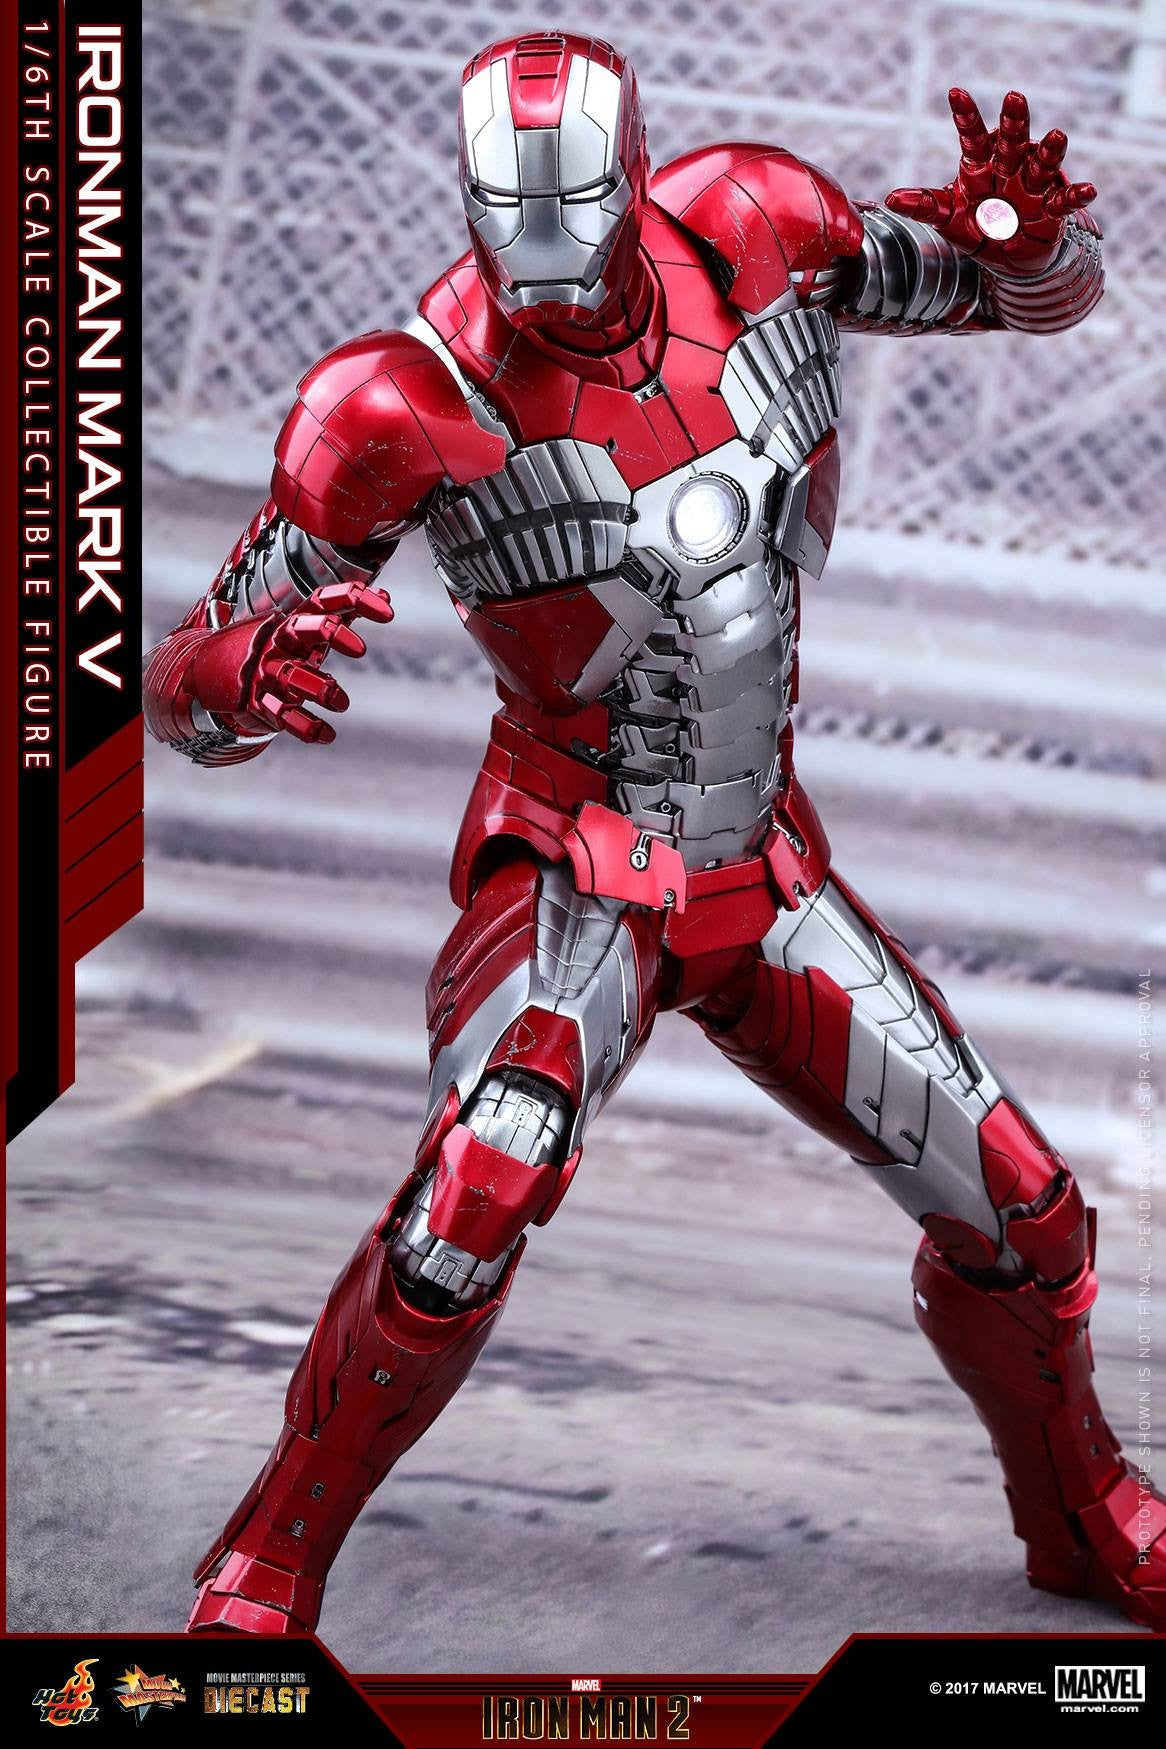 Hot Toys - MMS400D18 - Iron Man 2 - Mark V (DIECAST) - Marvelous Toys - 14